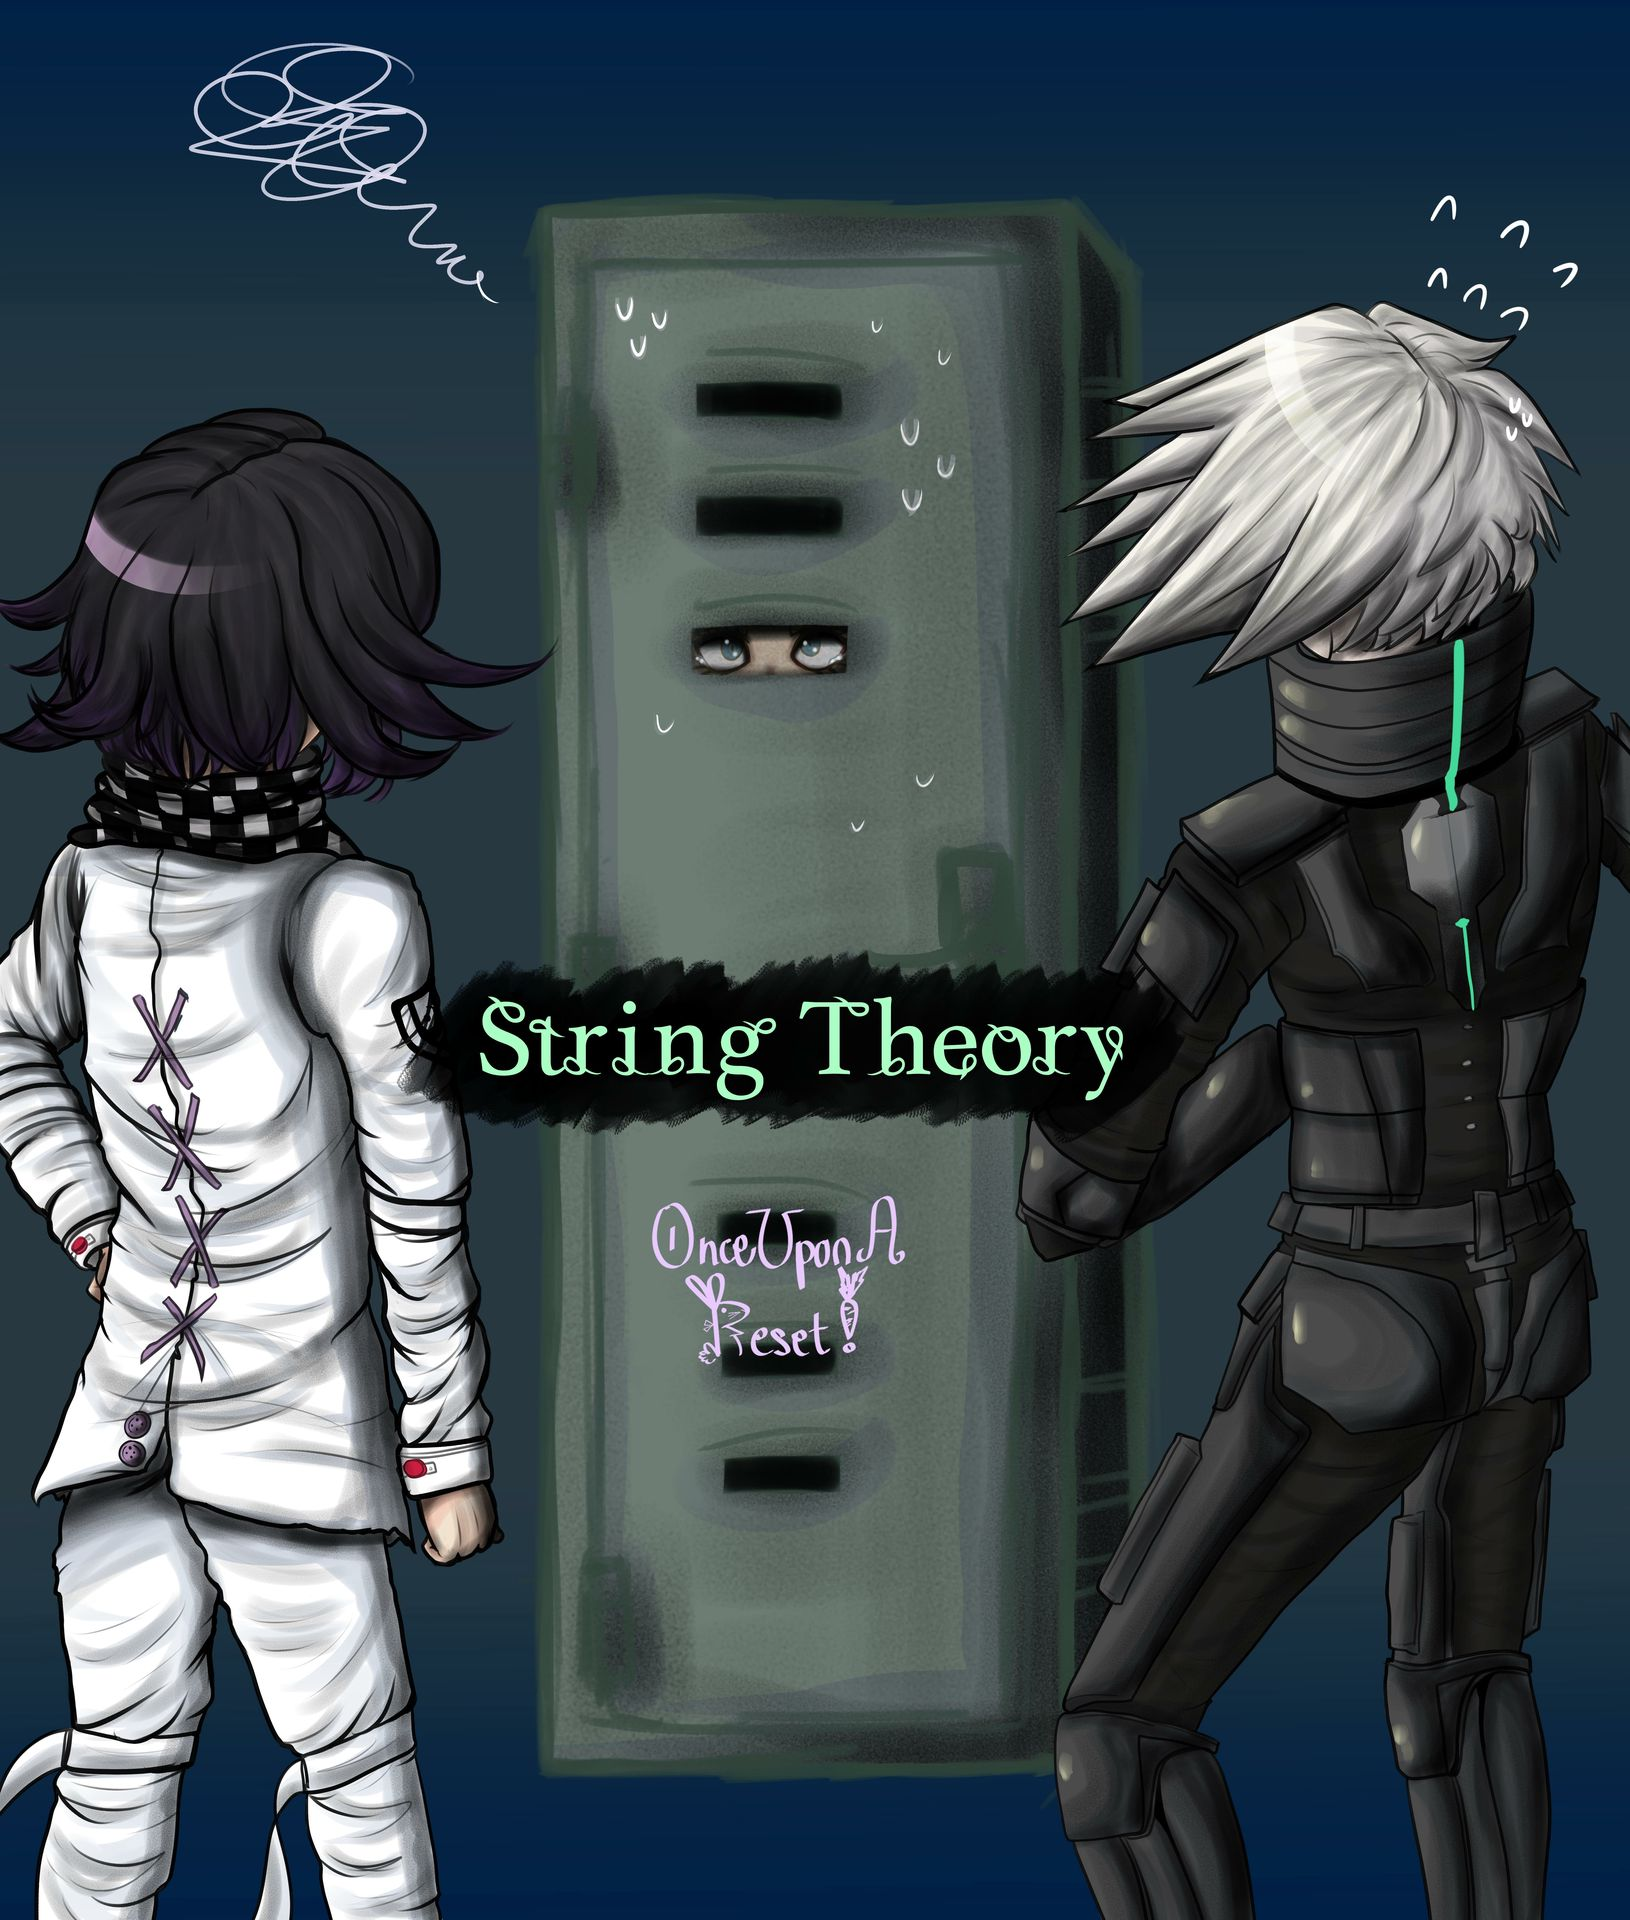 String Theory (Danganronpa V3 Fanfic) - 1 5 - I Know Nothing